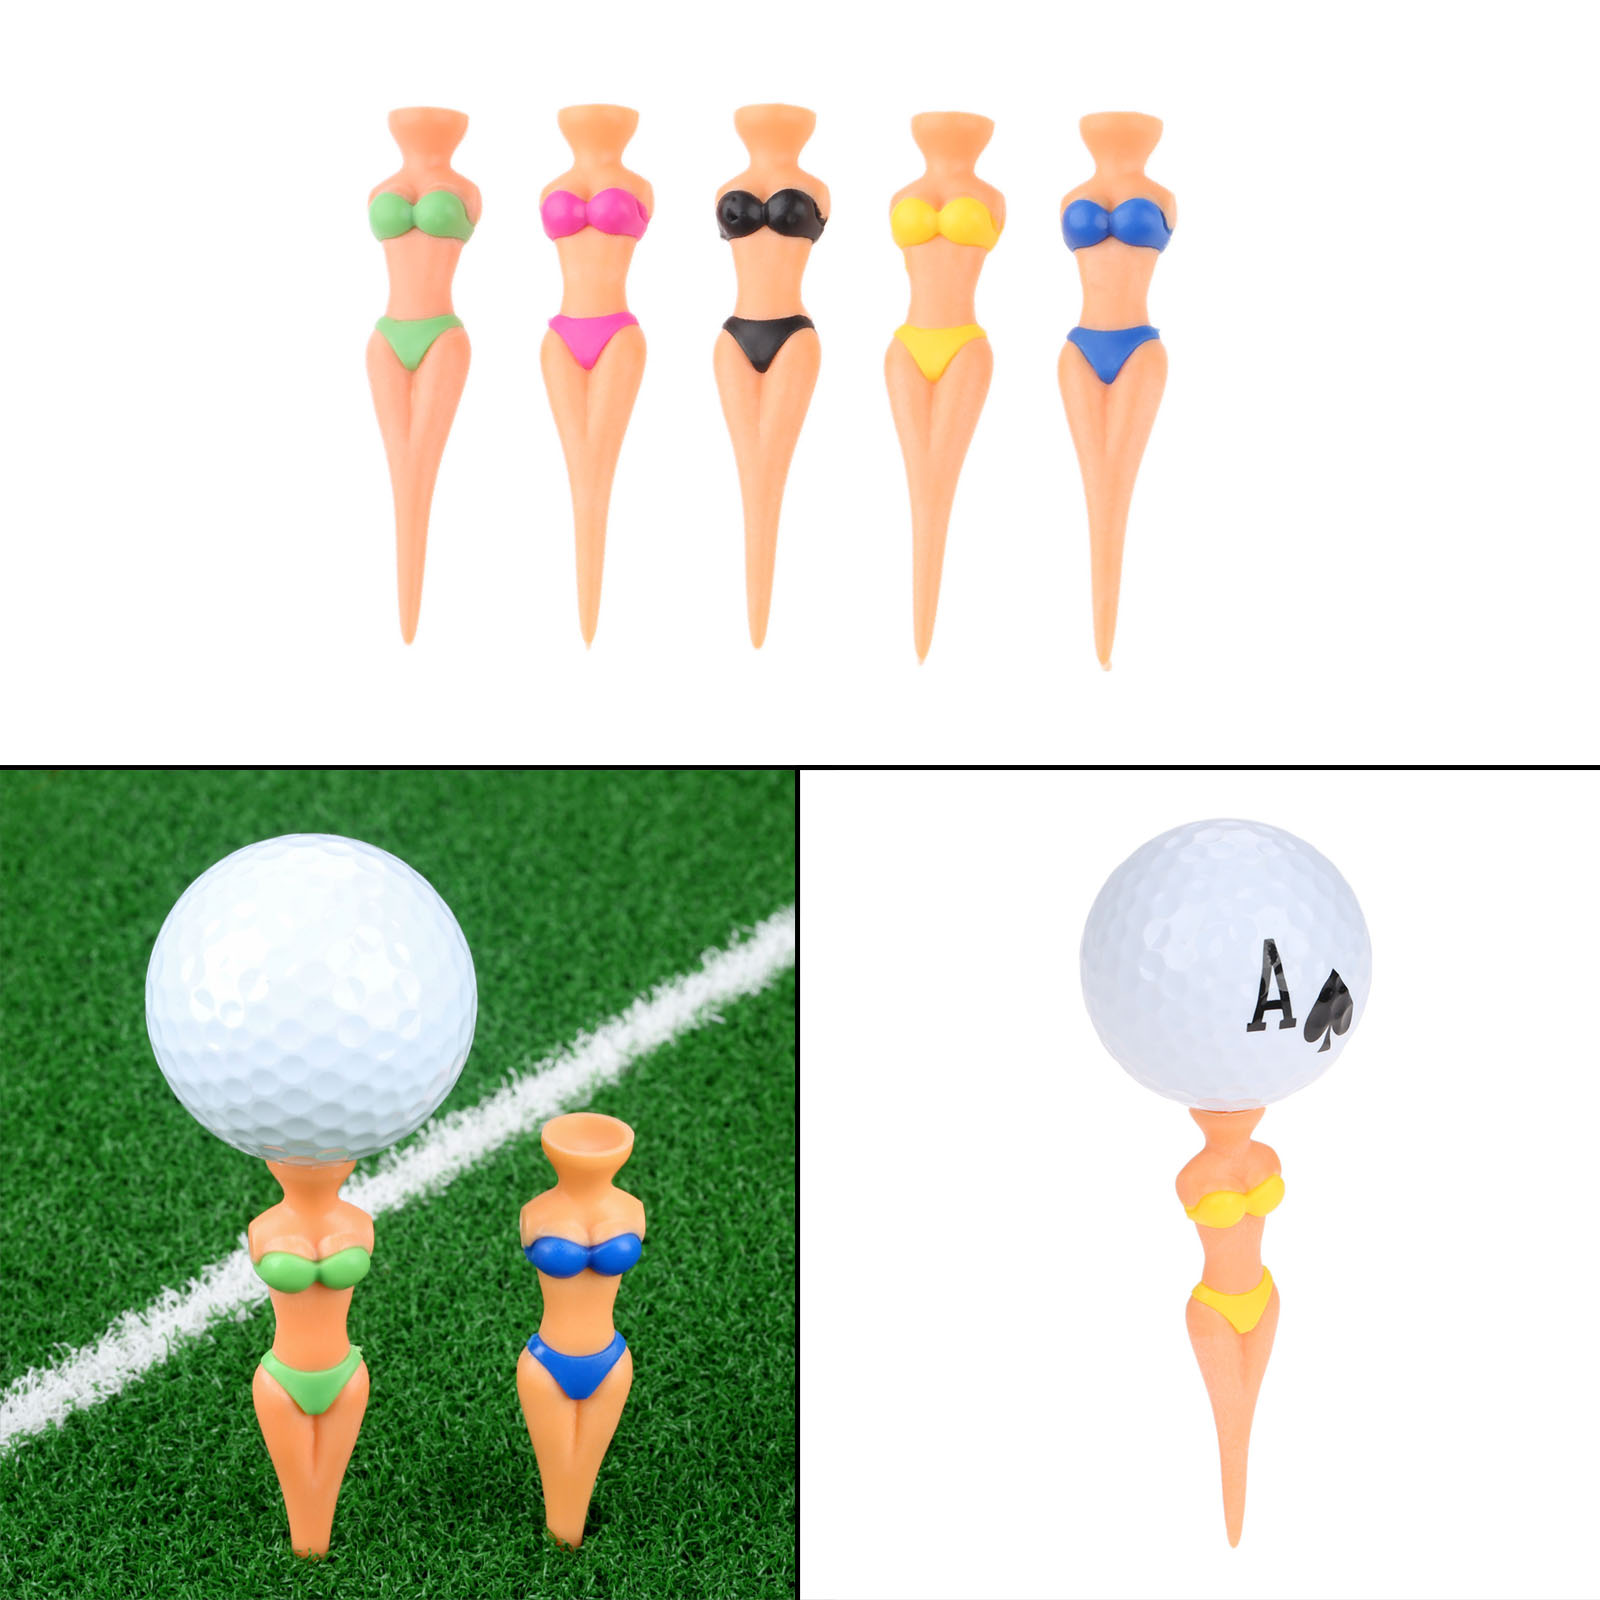 6pcs Plastic Novelty Bikini Lady Girl Women Golf Tees 78mm Pitch Fork Divot Tools Funny Joke Stag Party Golf Accessories